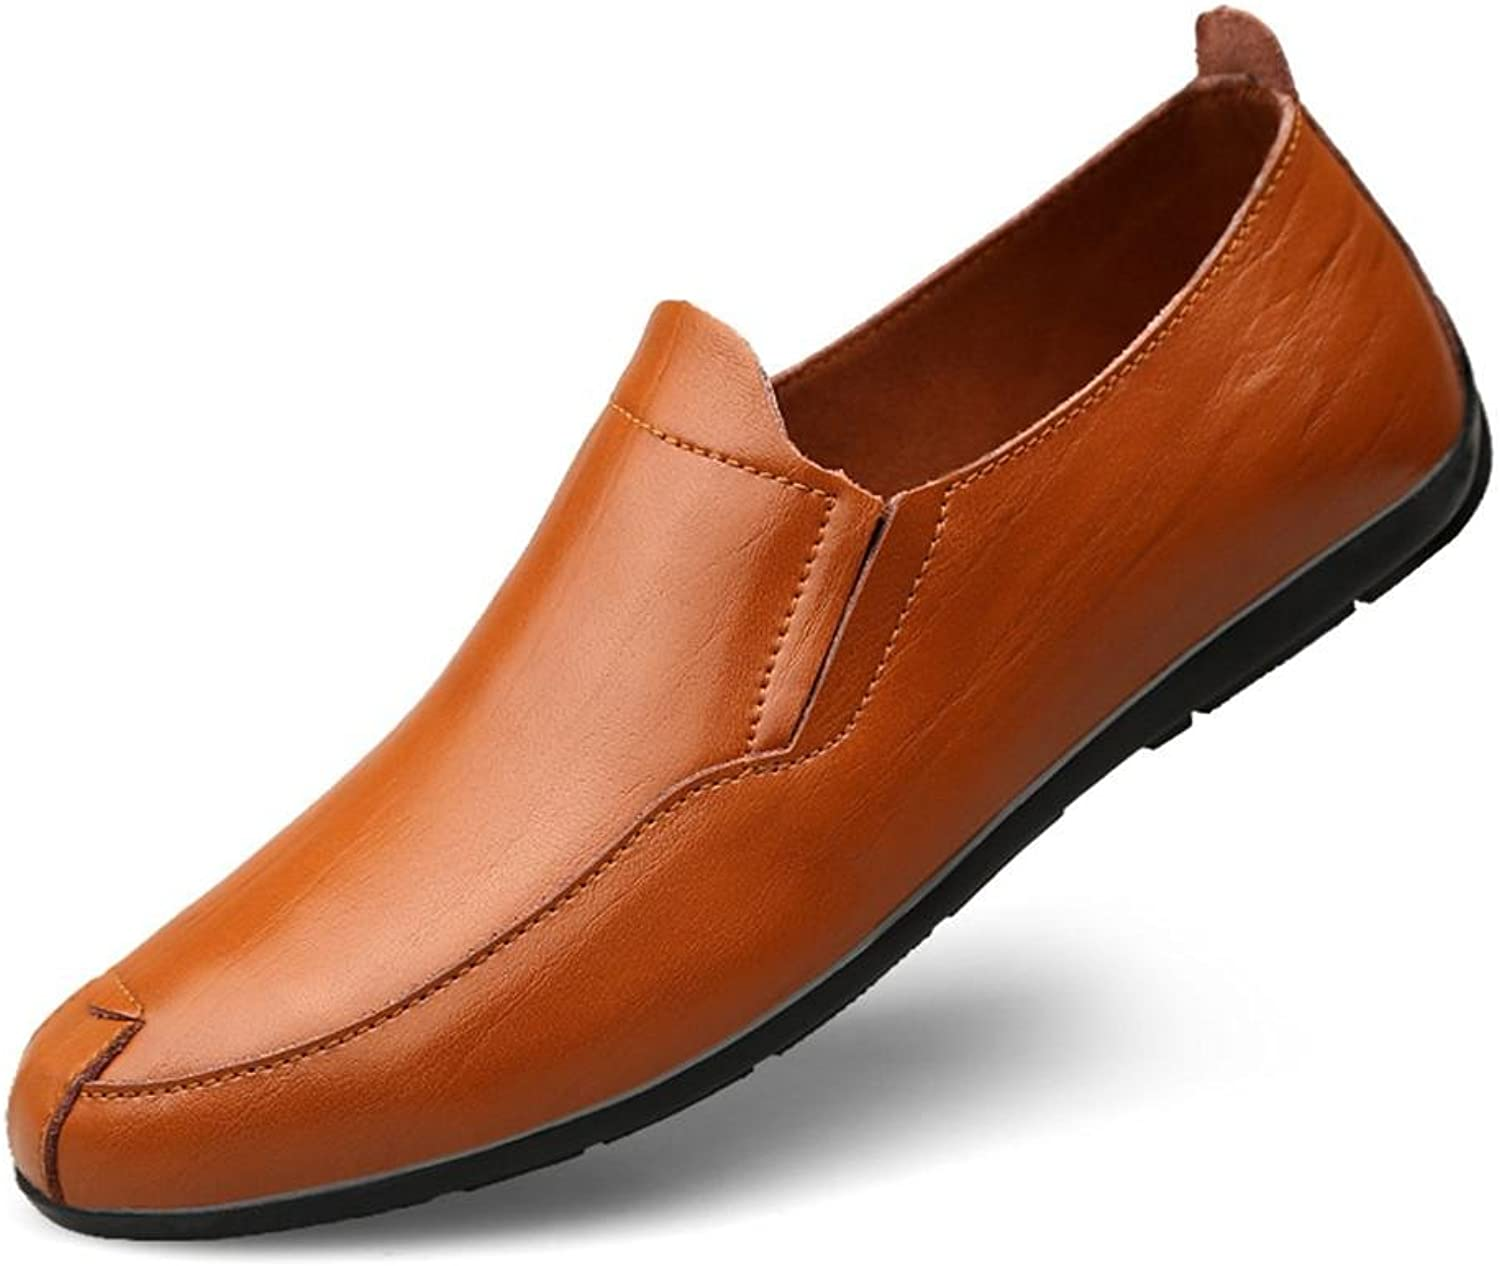 Men'S shoes Leather Casual Rubber Elastic Soft Sole Driving Slip On Clipper Loafers Flat Black Brown Size 39 To 46